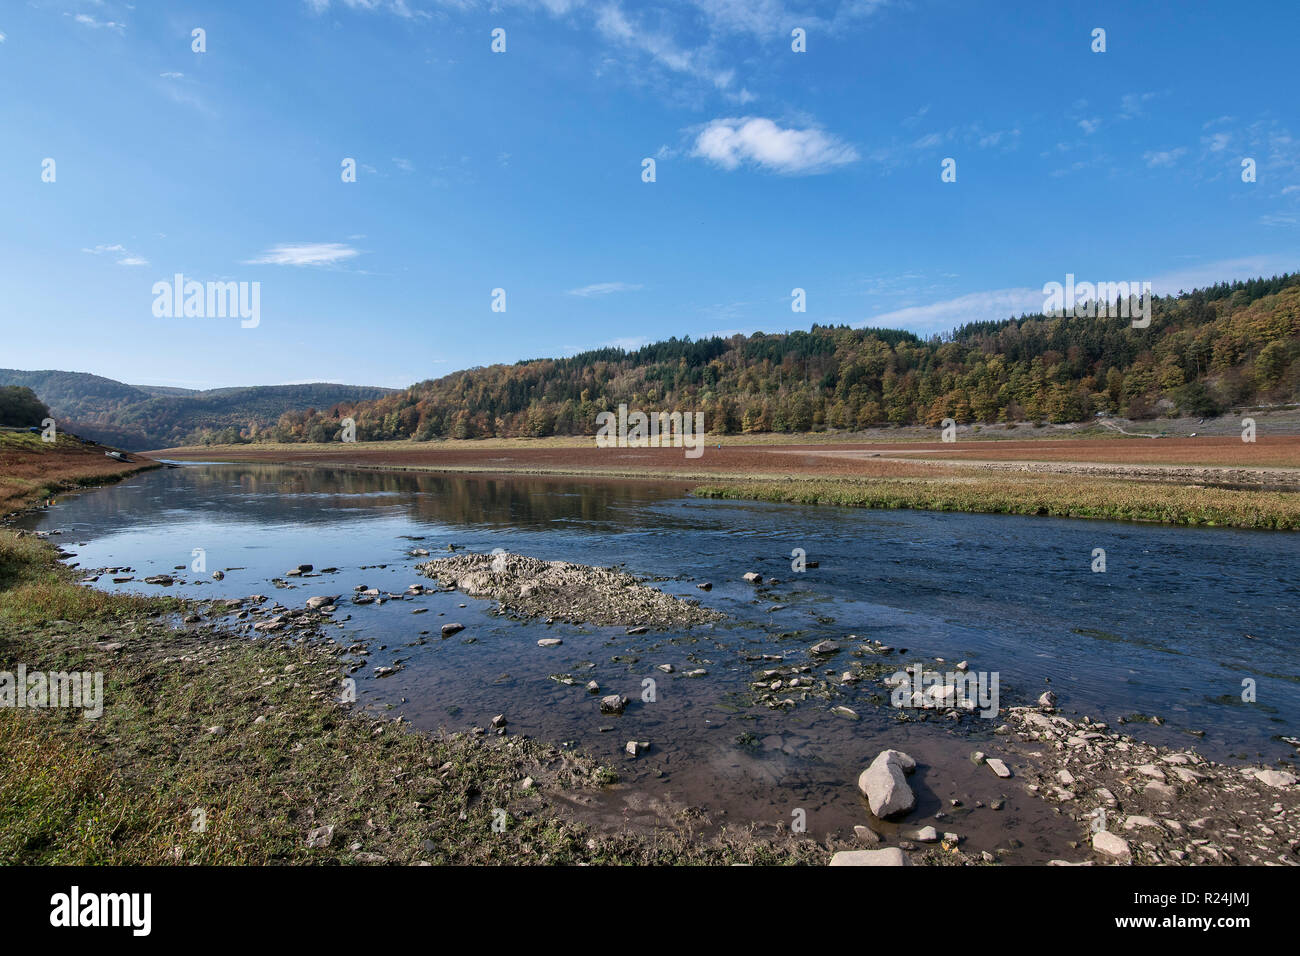 The almost-dry riverbed of the Edersee Lake, Kellerwald-Edersee National Park. - Stock Image